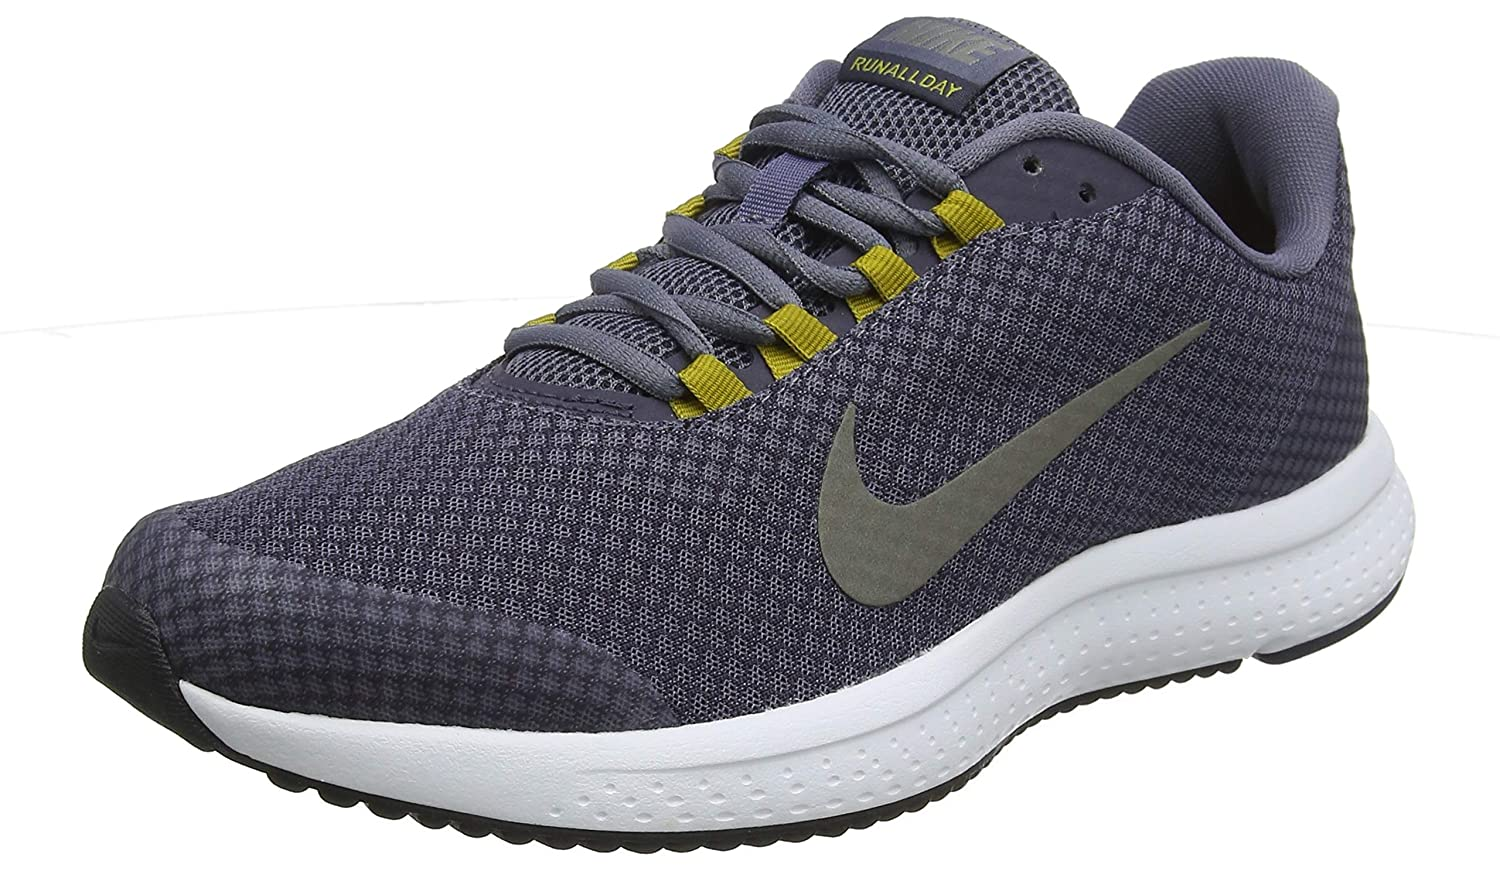 1eb87a75a9573 NIKE Men s RUNALLDAY Light Carbon MTLC Pewter-Gridiron Running Shoes  (898464-017)  Buy Online at Low Prices in India - Amazon.in